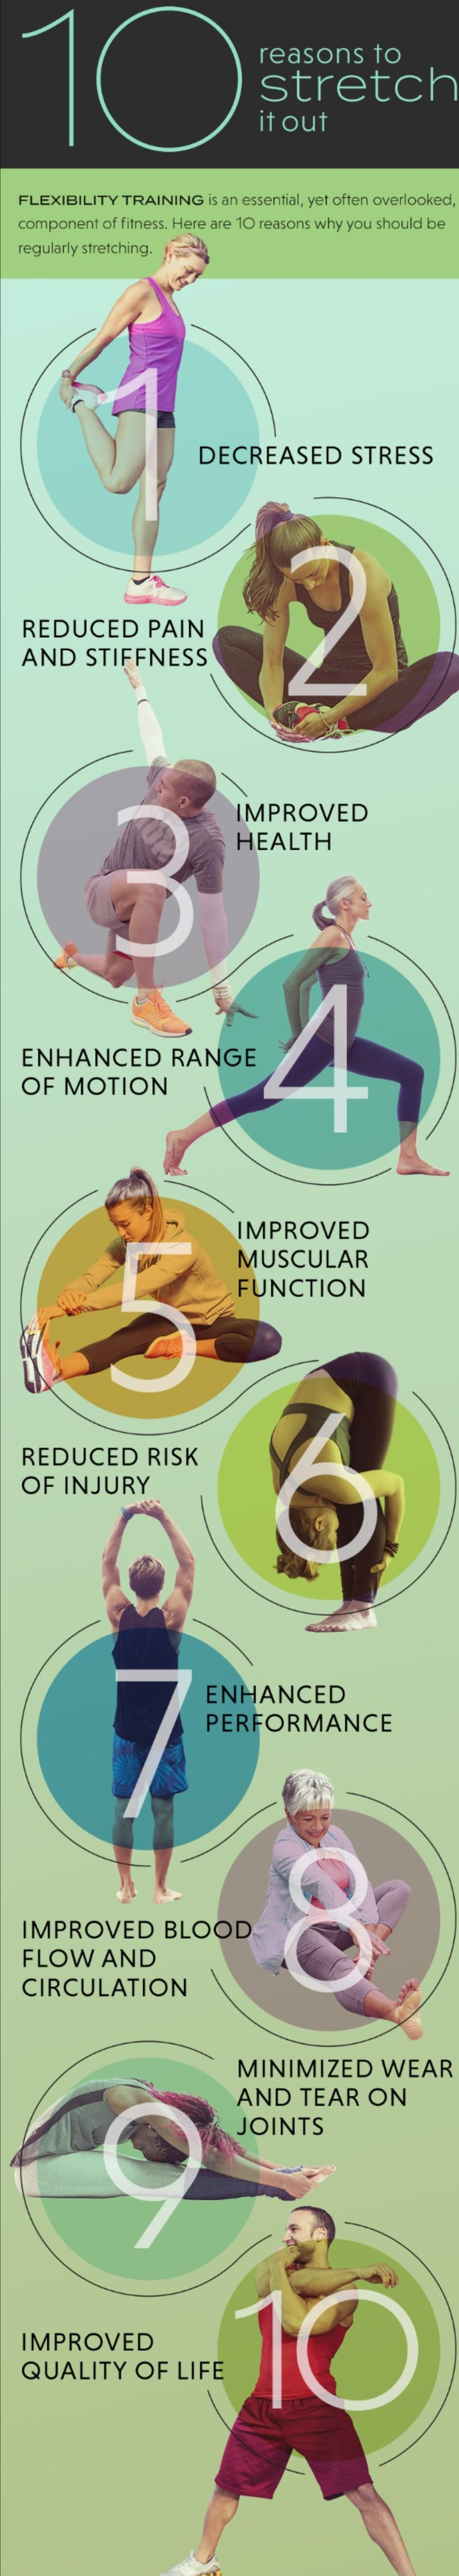 Flexibility training is an essential, yet often overlooked